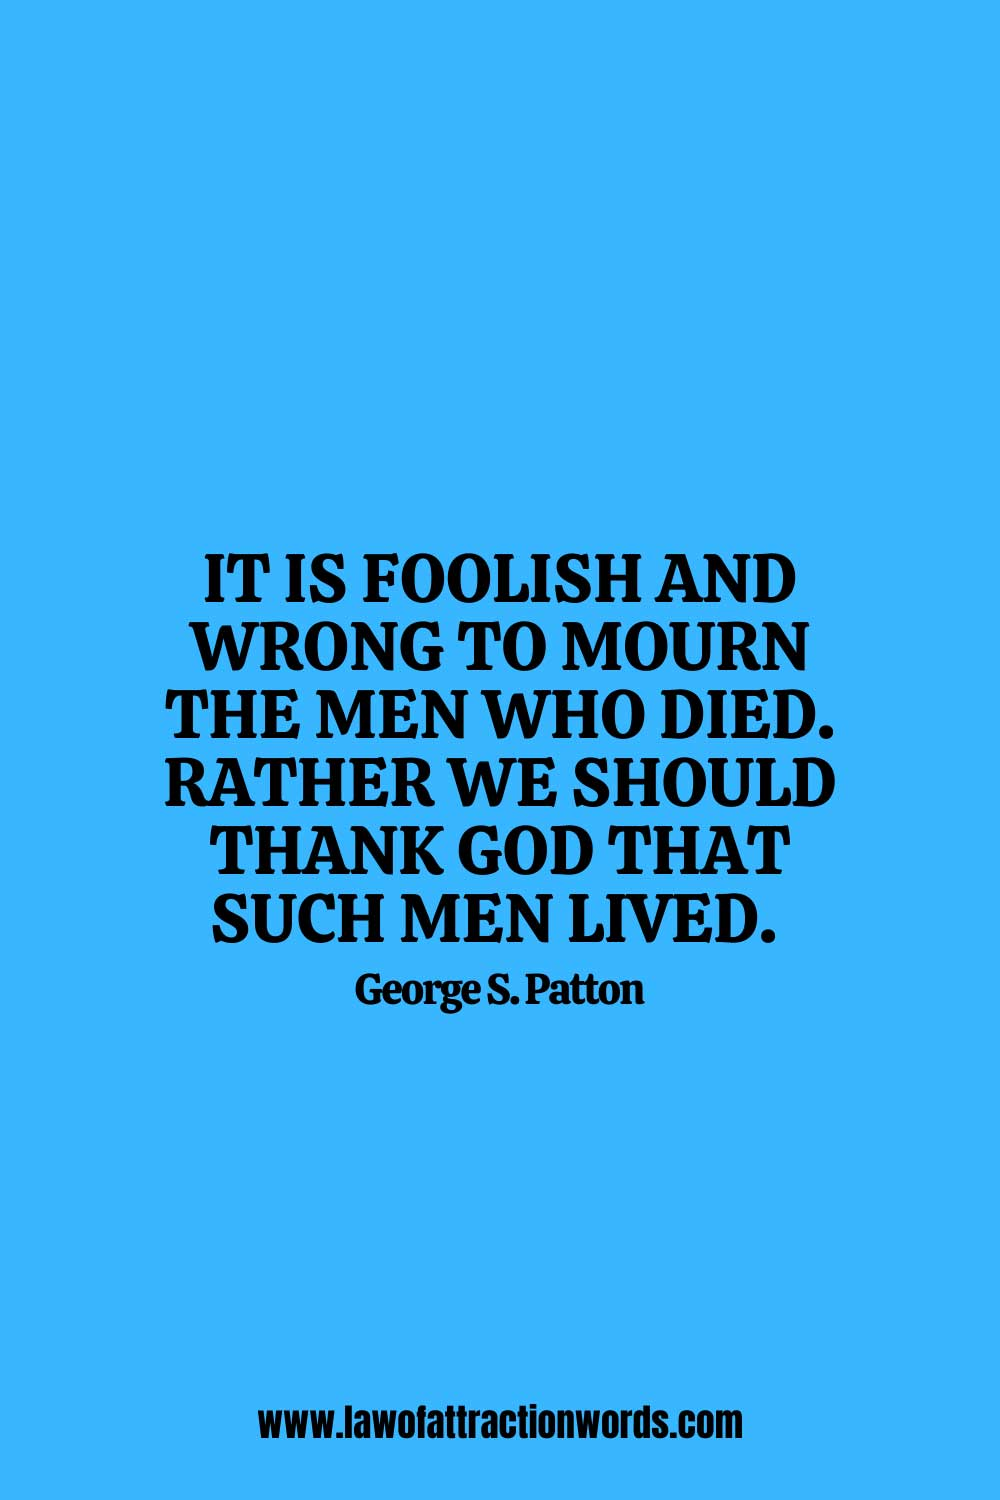 Wisdom Spiritual Quotes About Death Of A Loved One